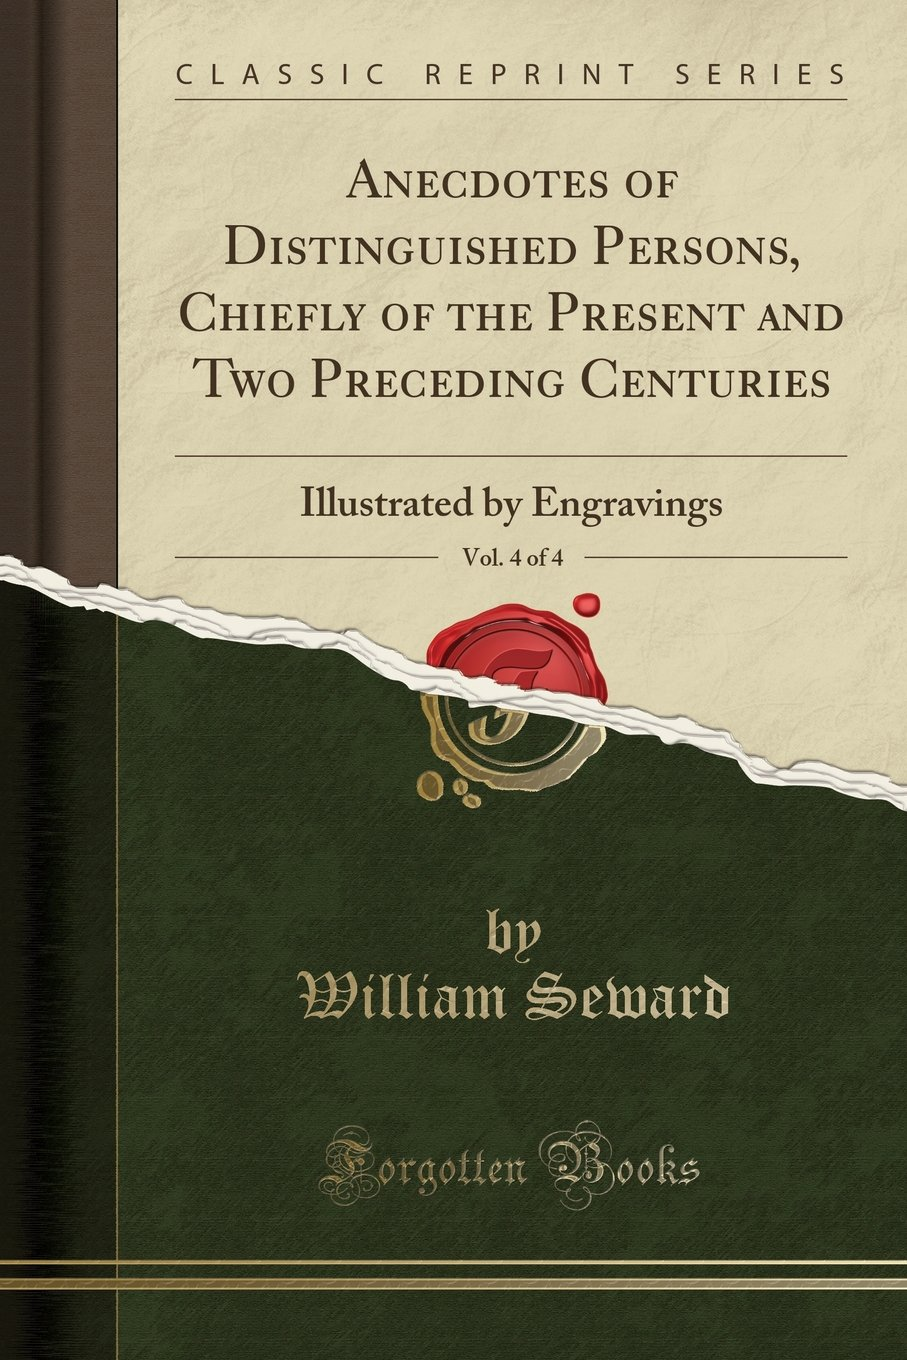 Download Anecdotes of Distinguished Persons, Chiefly of the Present and Two Preceding Centuries, Vol. 4 of 4: Illustrated by Engravings (Classic Reprint) pdf